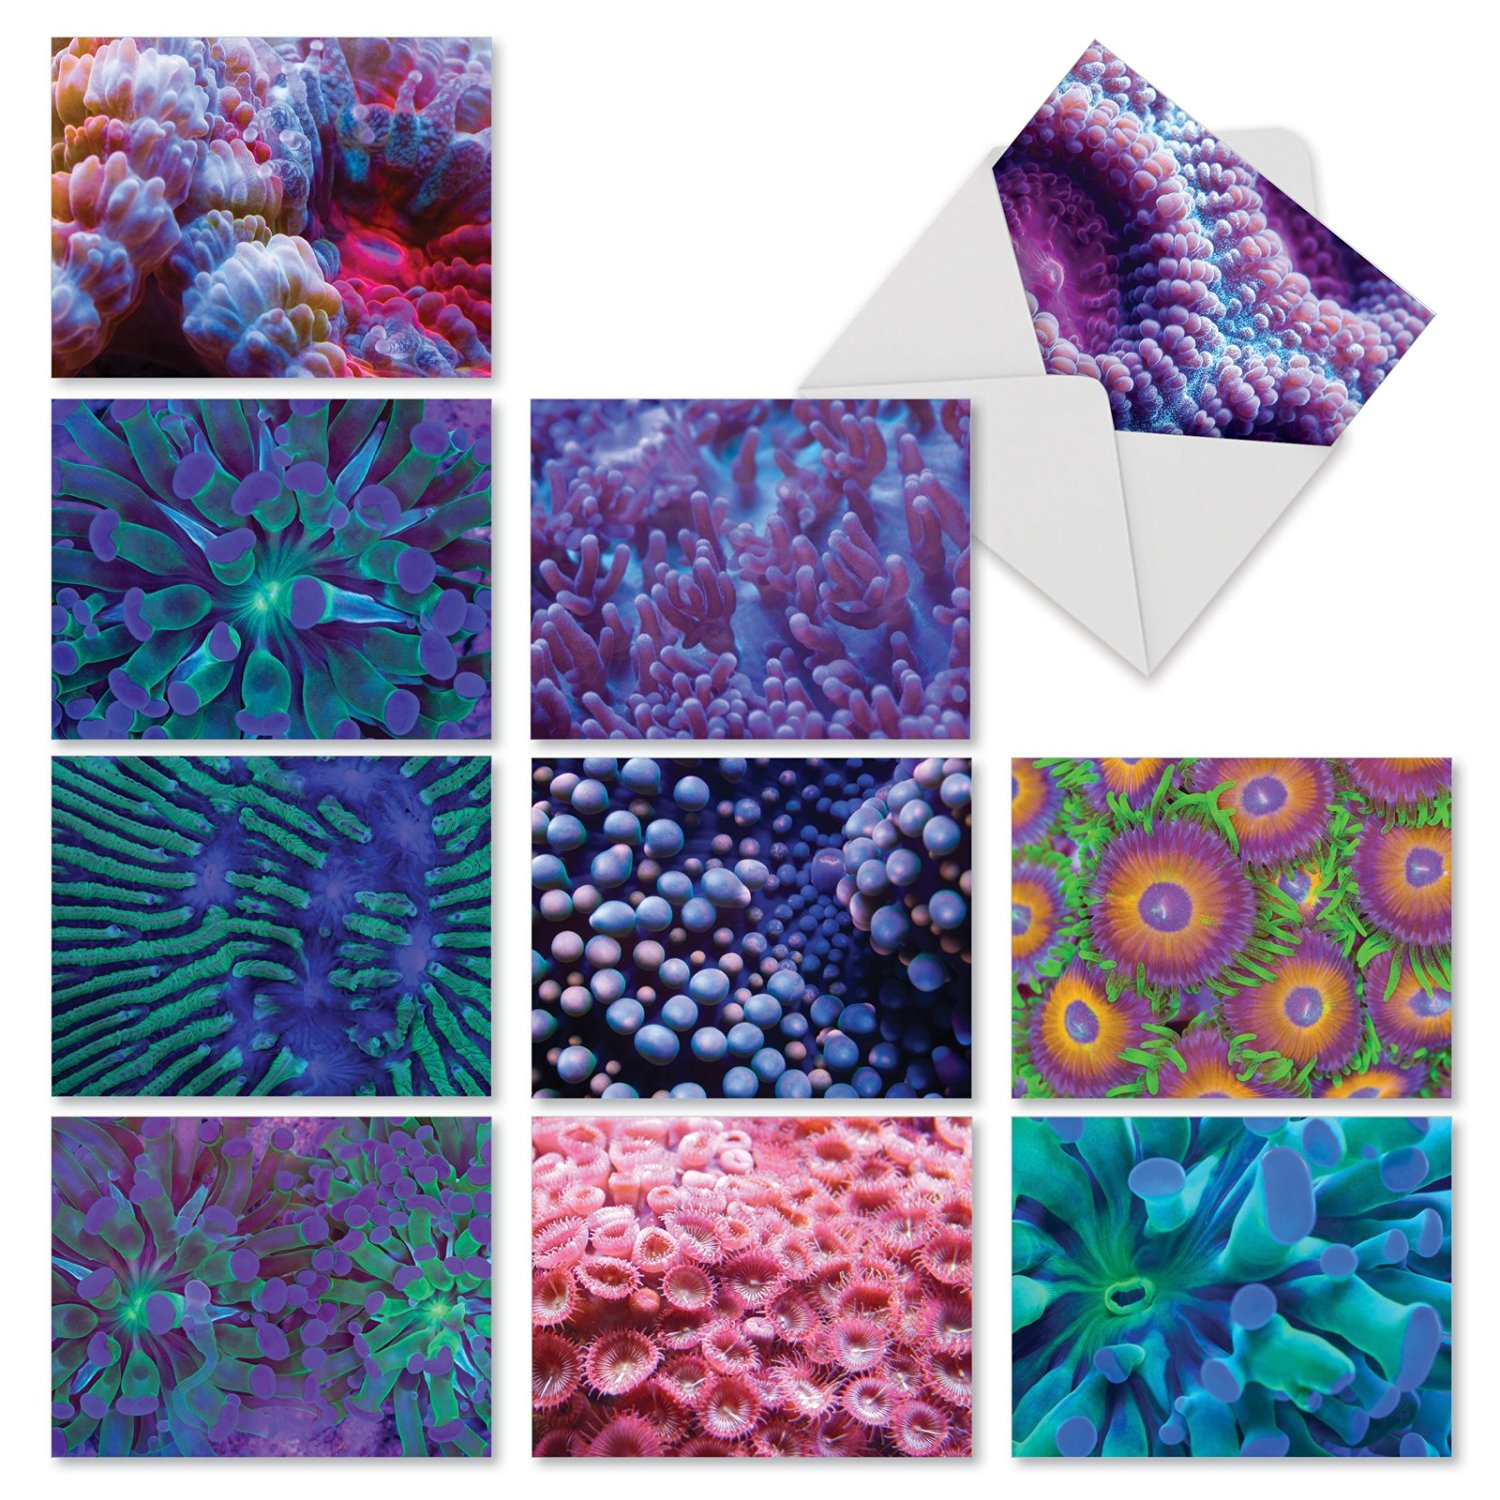 M2103 Under The Sea: 10 Assorted Thank You Note Cards Featuring Colorful Close-Ups of Sea Anemones, w/White Envelopes.